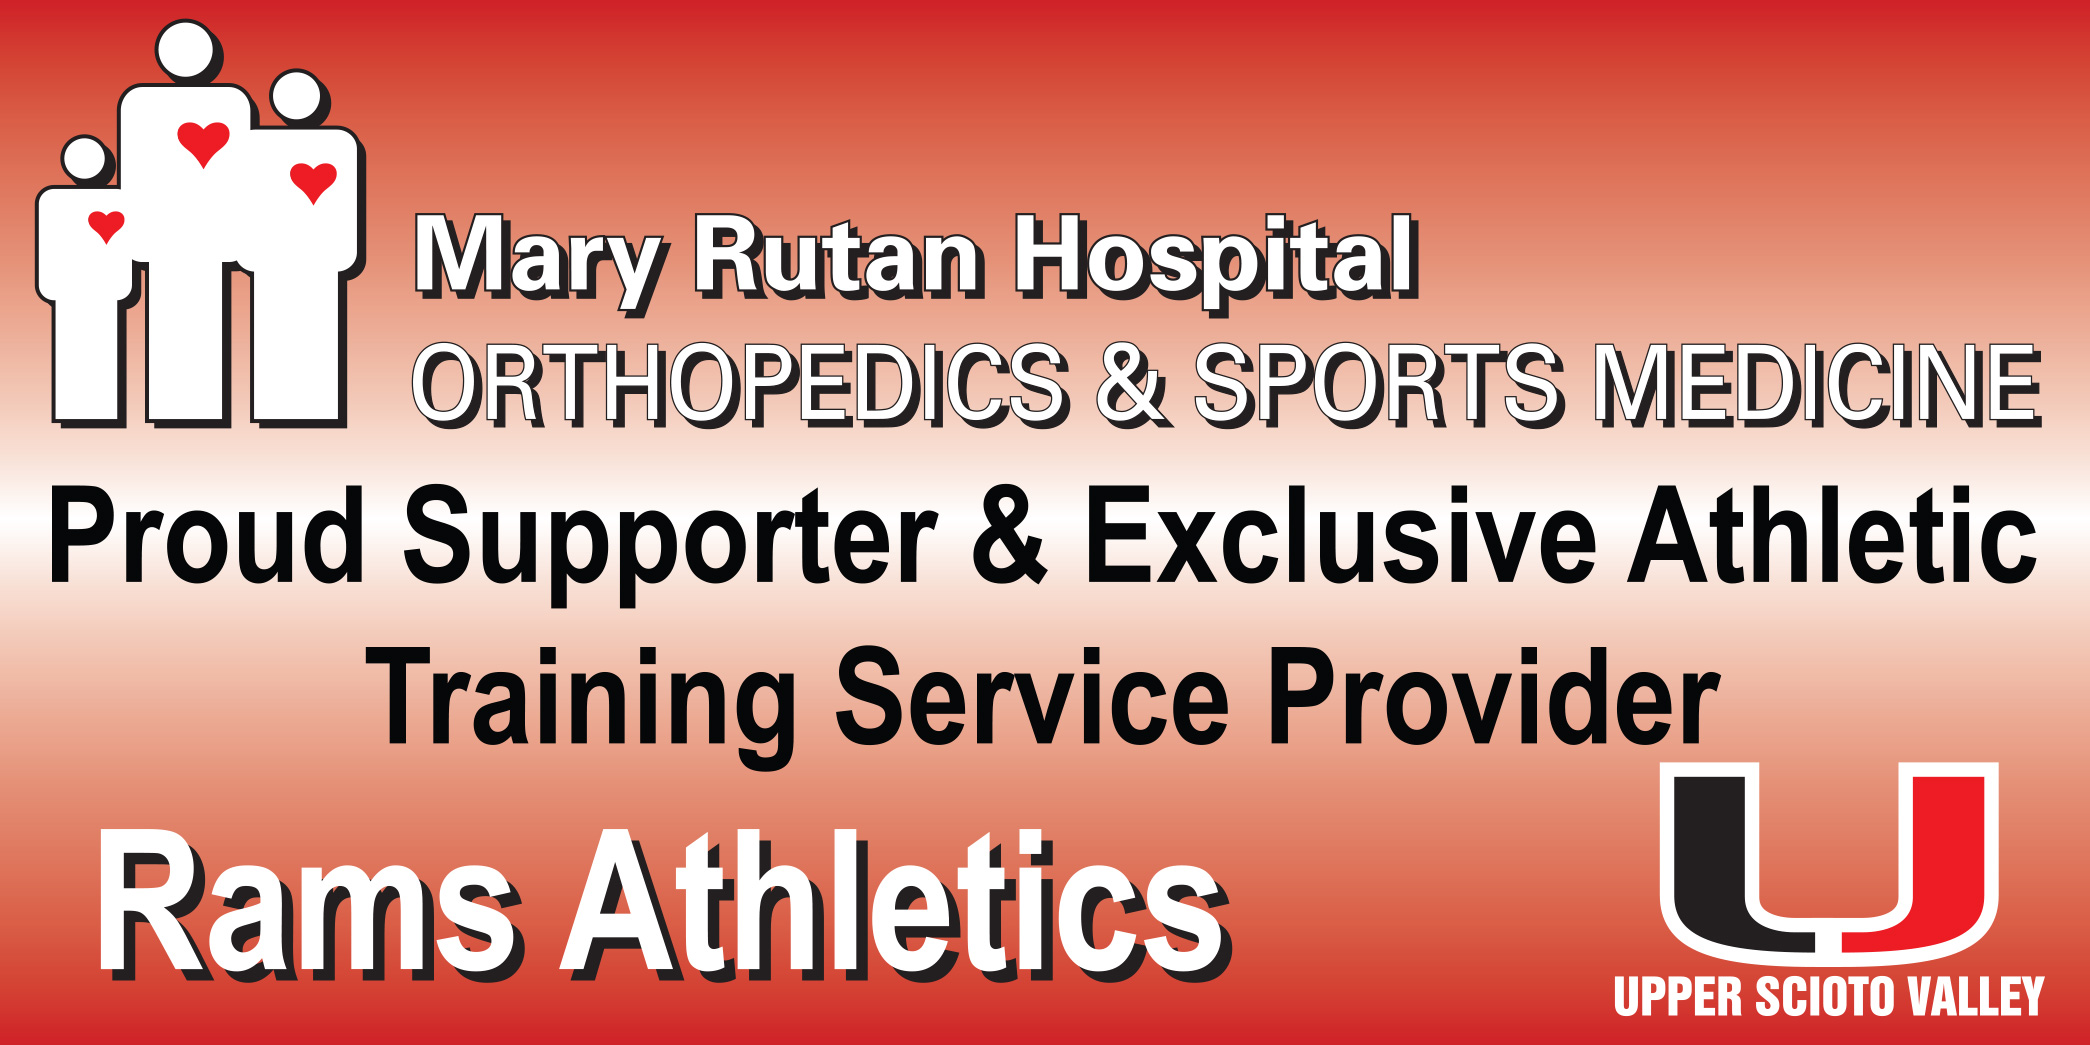 Mary Rutan Hospital Orthopedics & Sports Medicine Proud Supporter & Exclusive athletic training service provider Rams Athletics